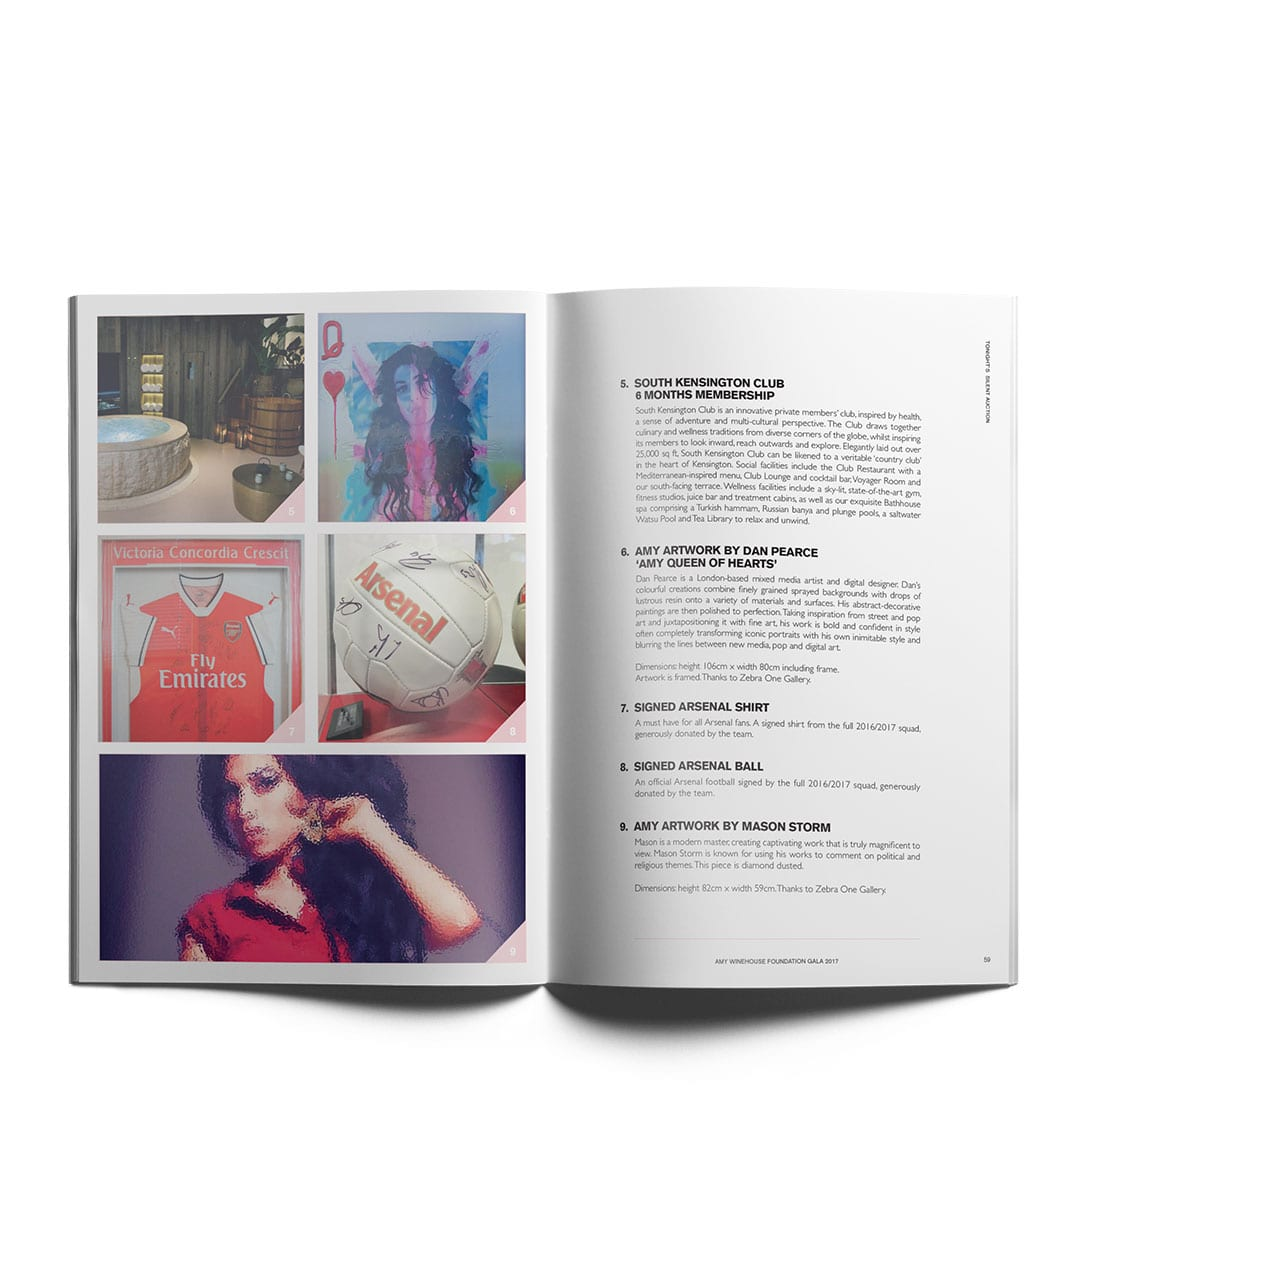 Image of the auction page designs in the Amy Winehouse Foundation Gala event programme.